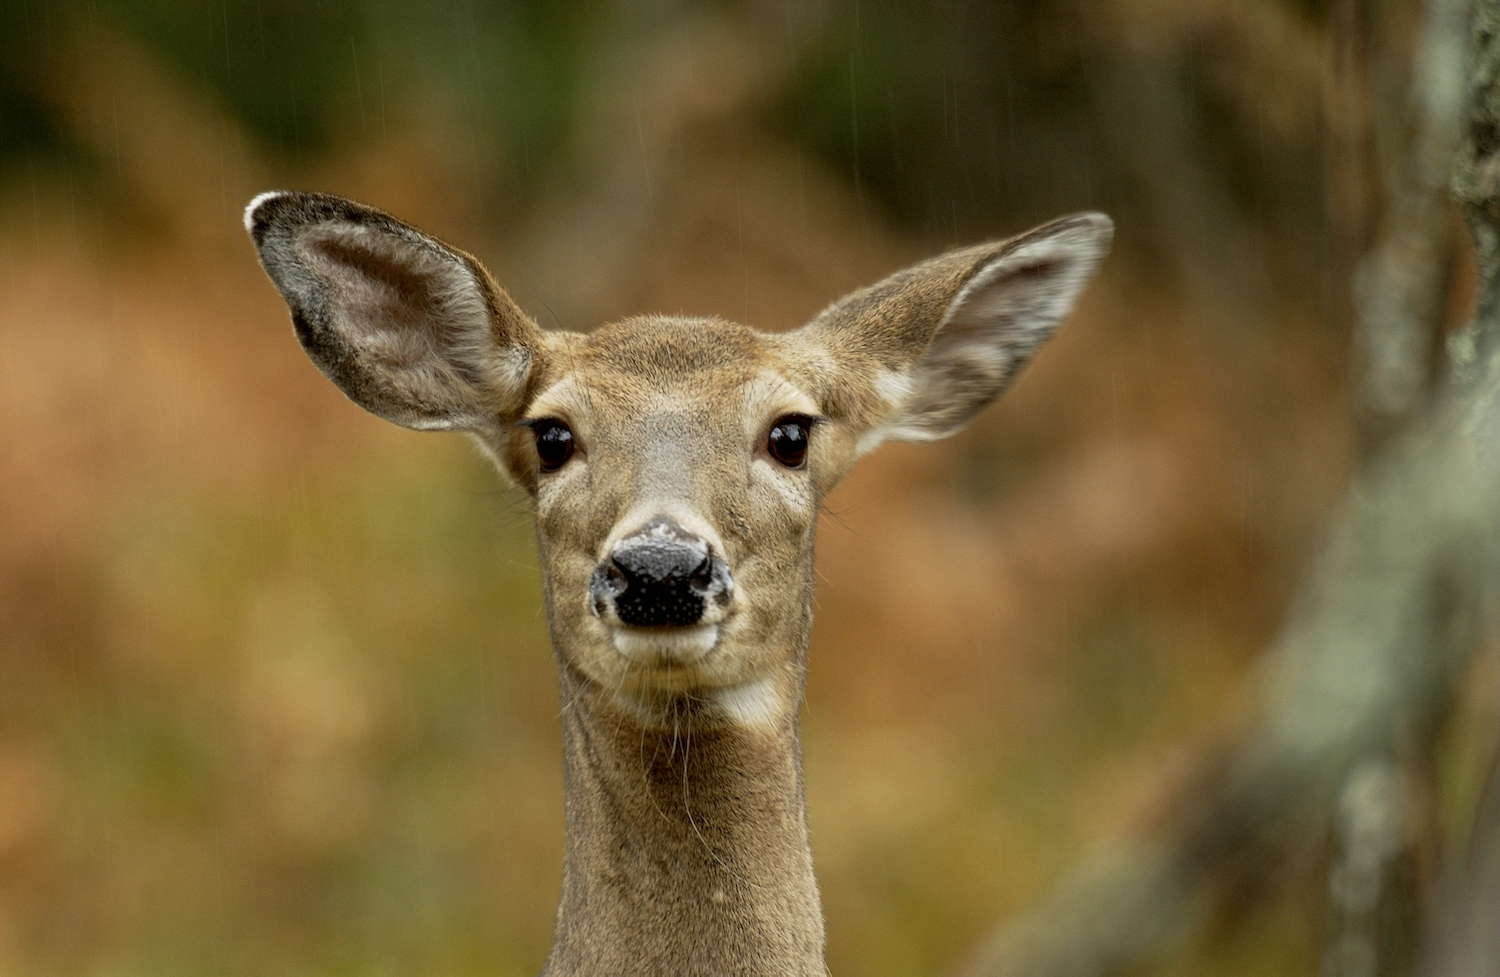 A young female deer looks straight ahead